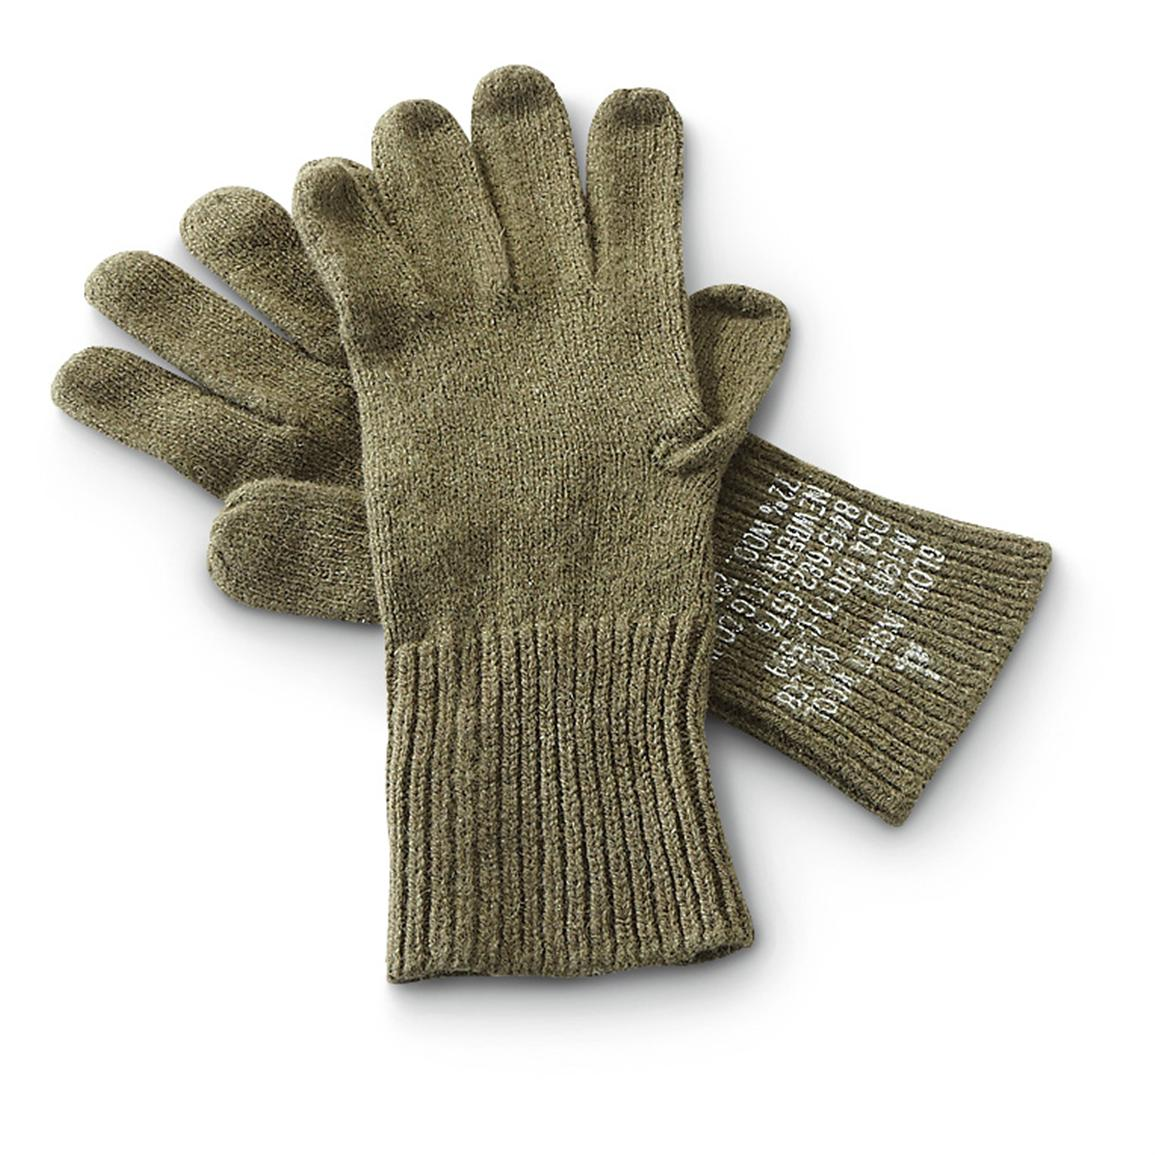 4 Prs. of New U.S. Military Surplus Glove Liners, Olive Drab